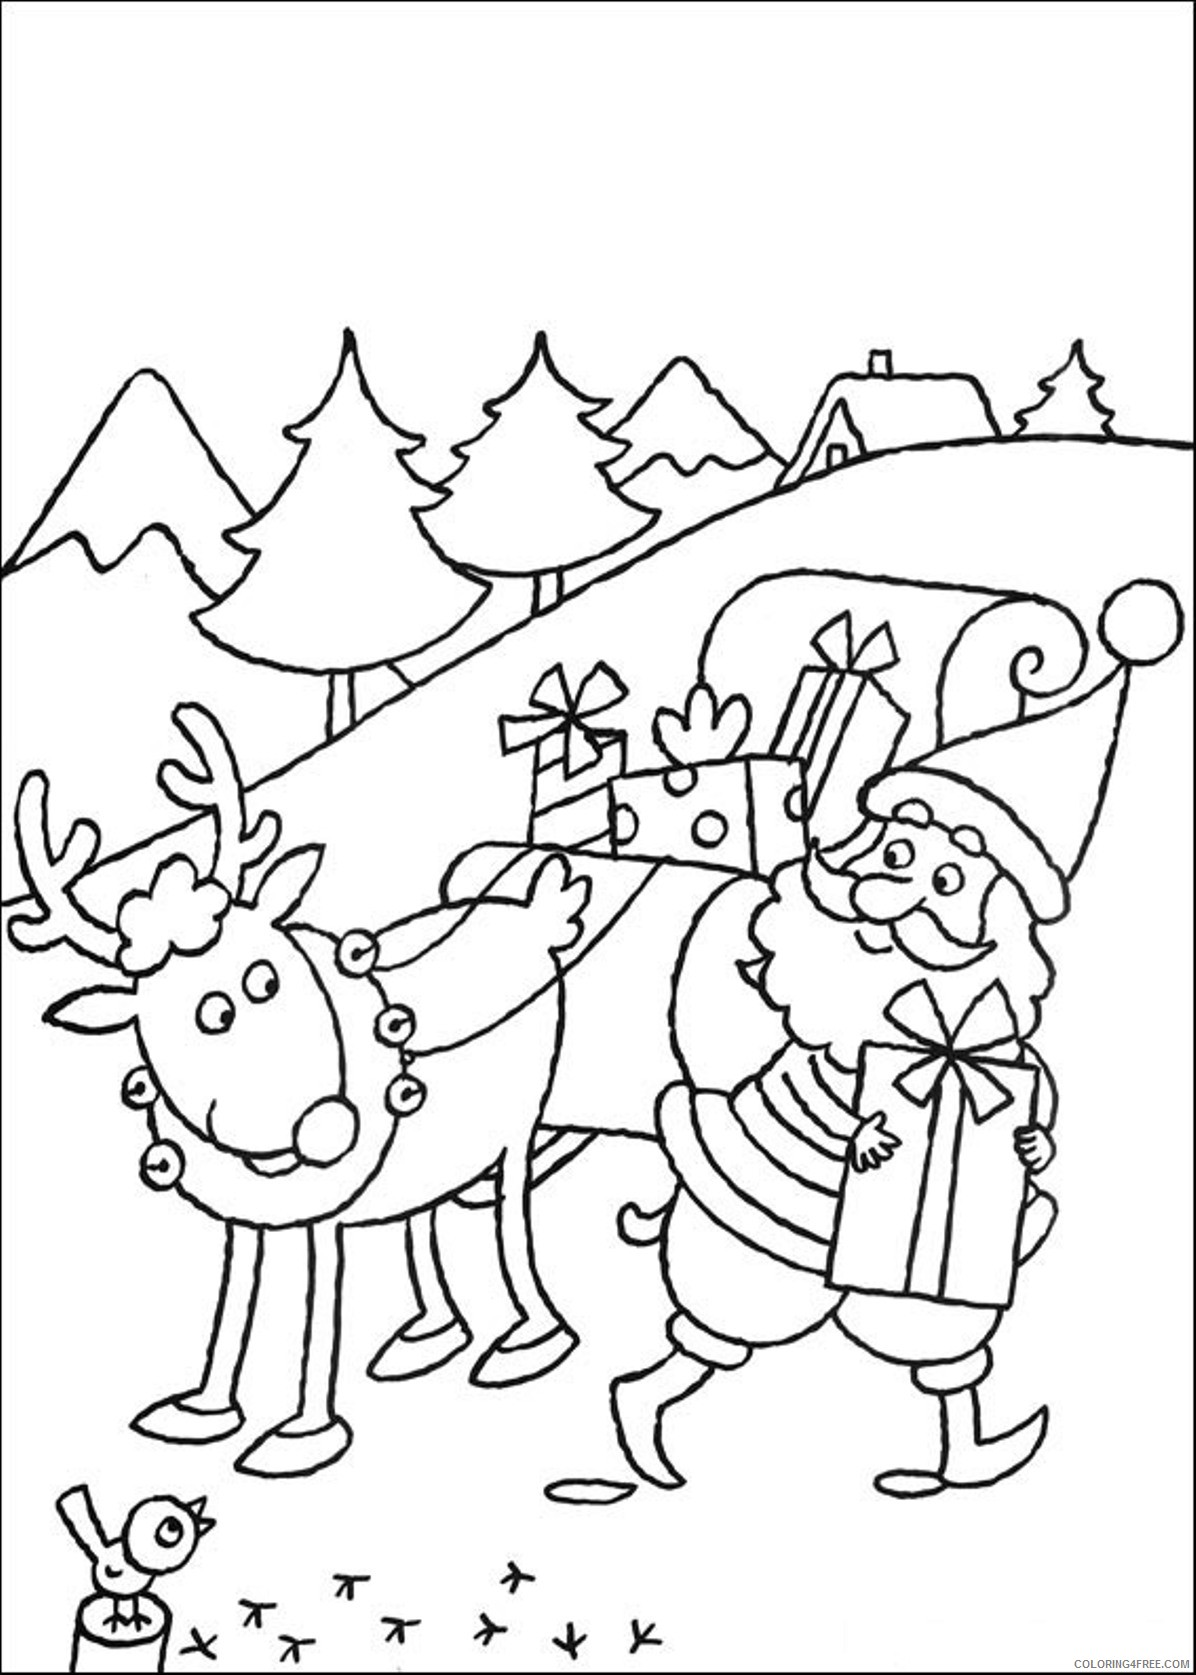 christmas reindeer coloring pages printable Coloring4free